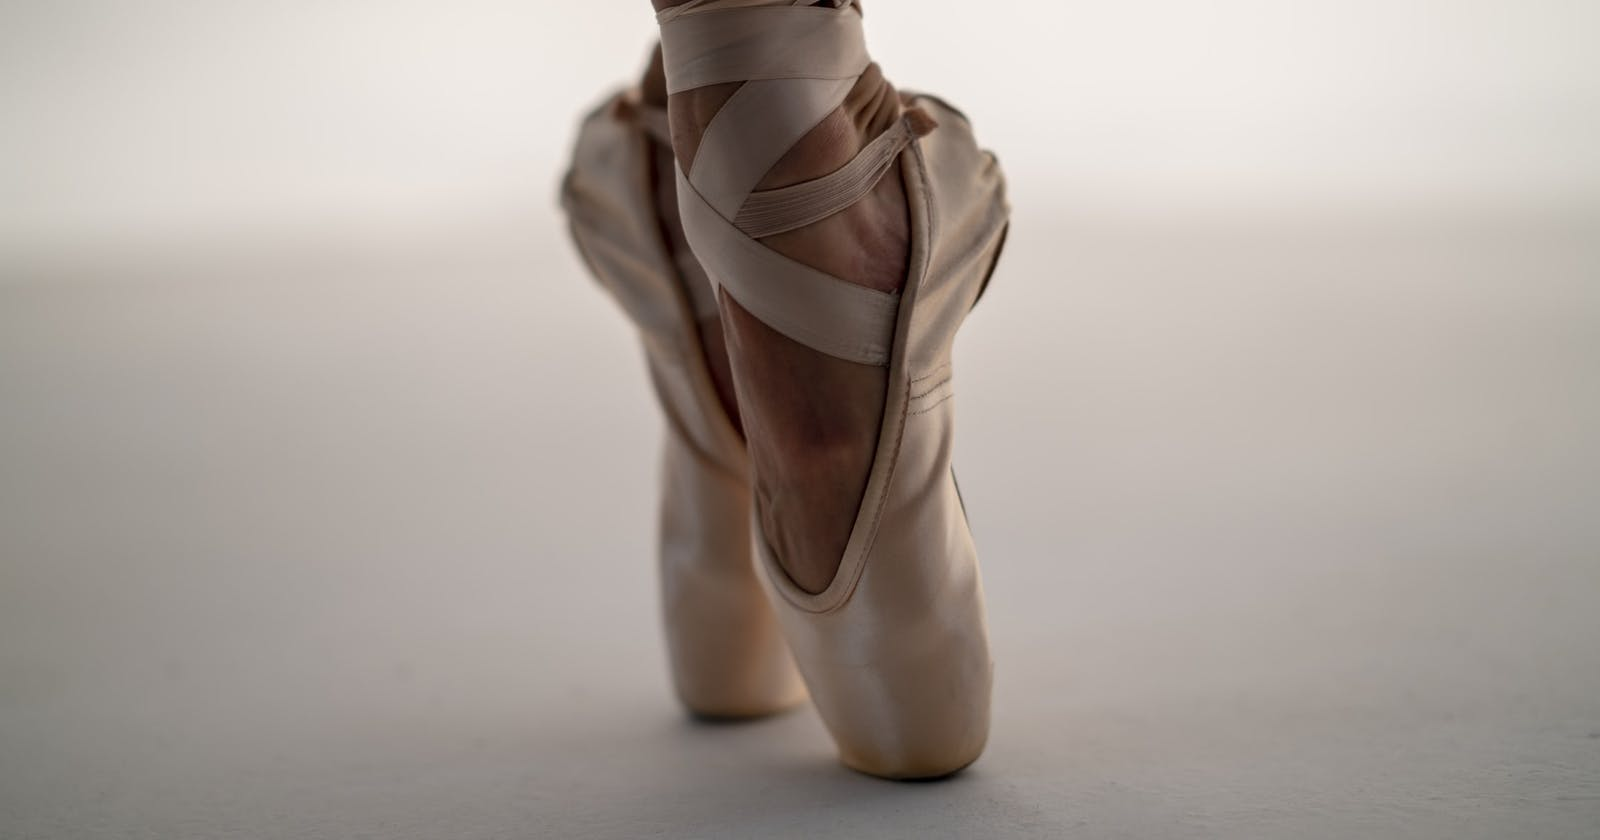 Developing Ballerina project with Ballerina CLI tool